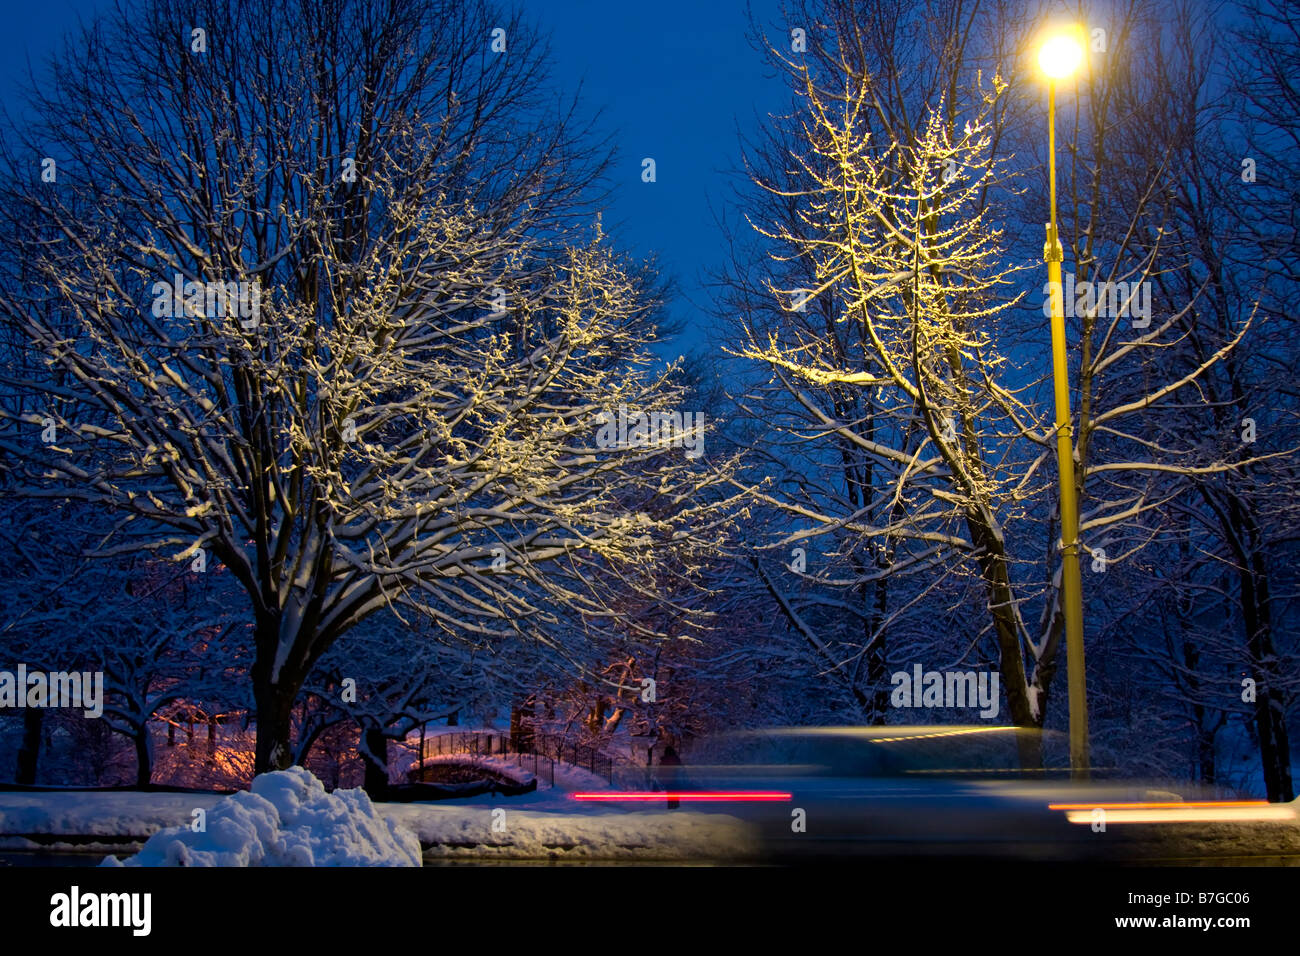 Night scene in Winter.  Streetlight illuminating snow covered trees with blurred car passing on street. - Stock Image